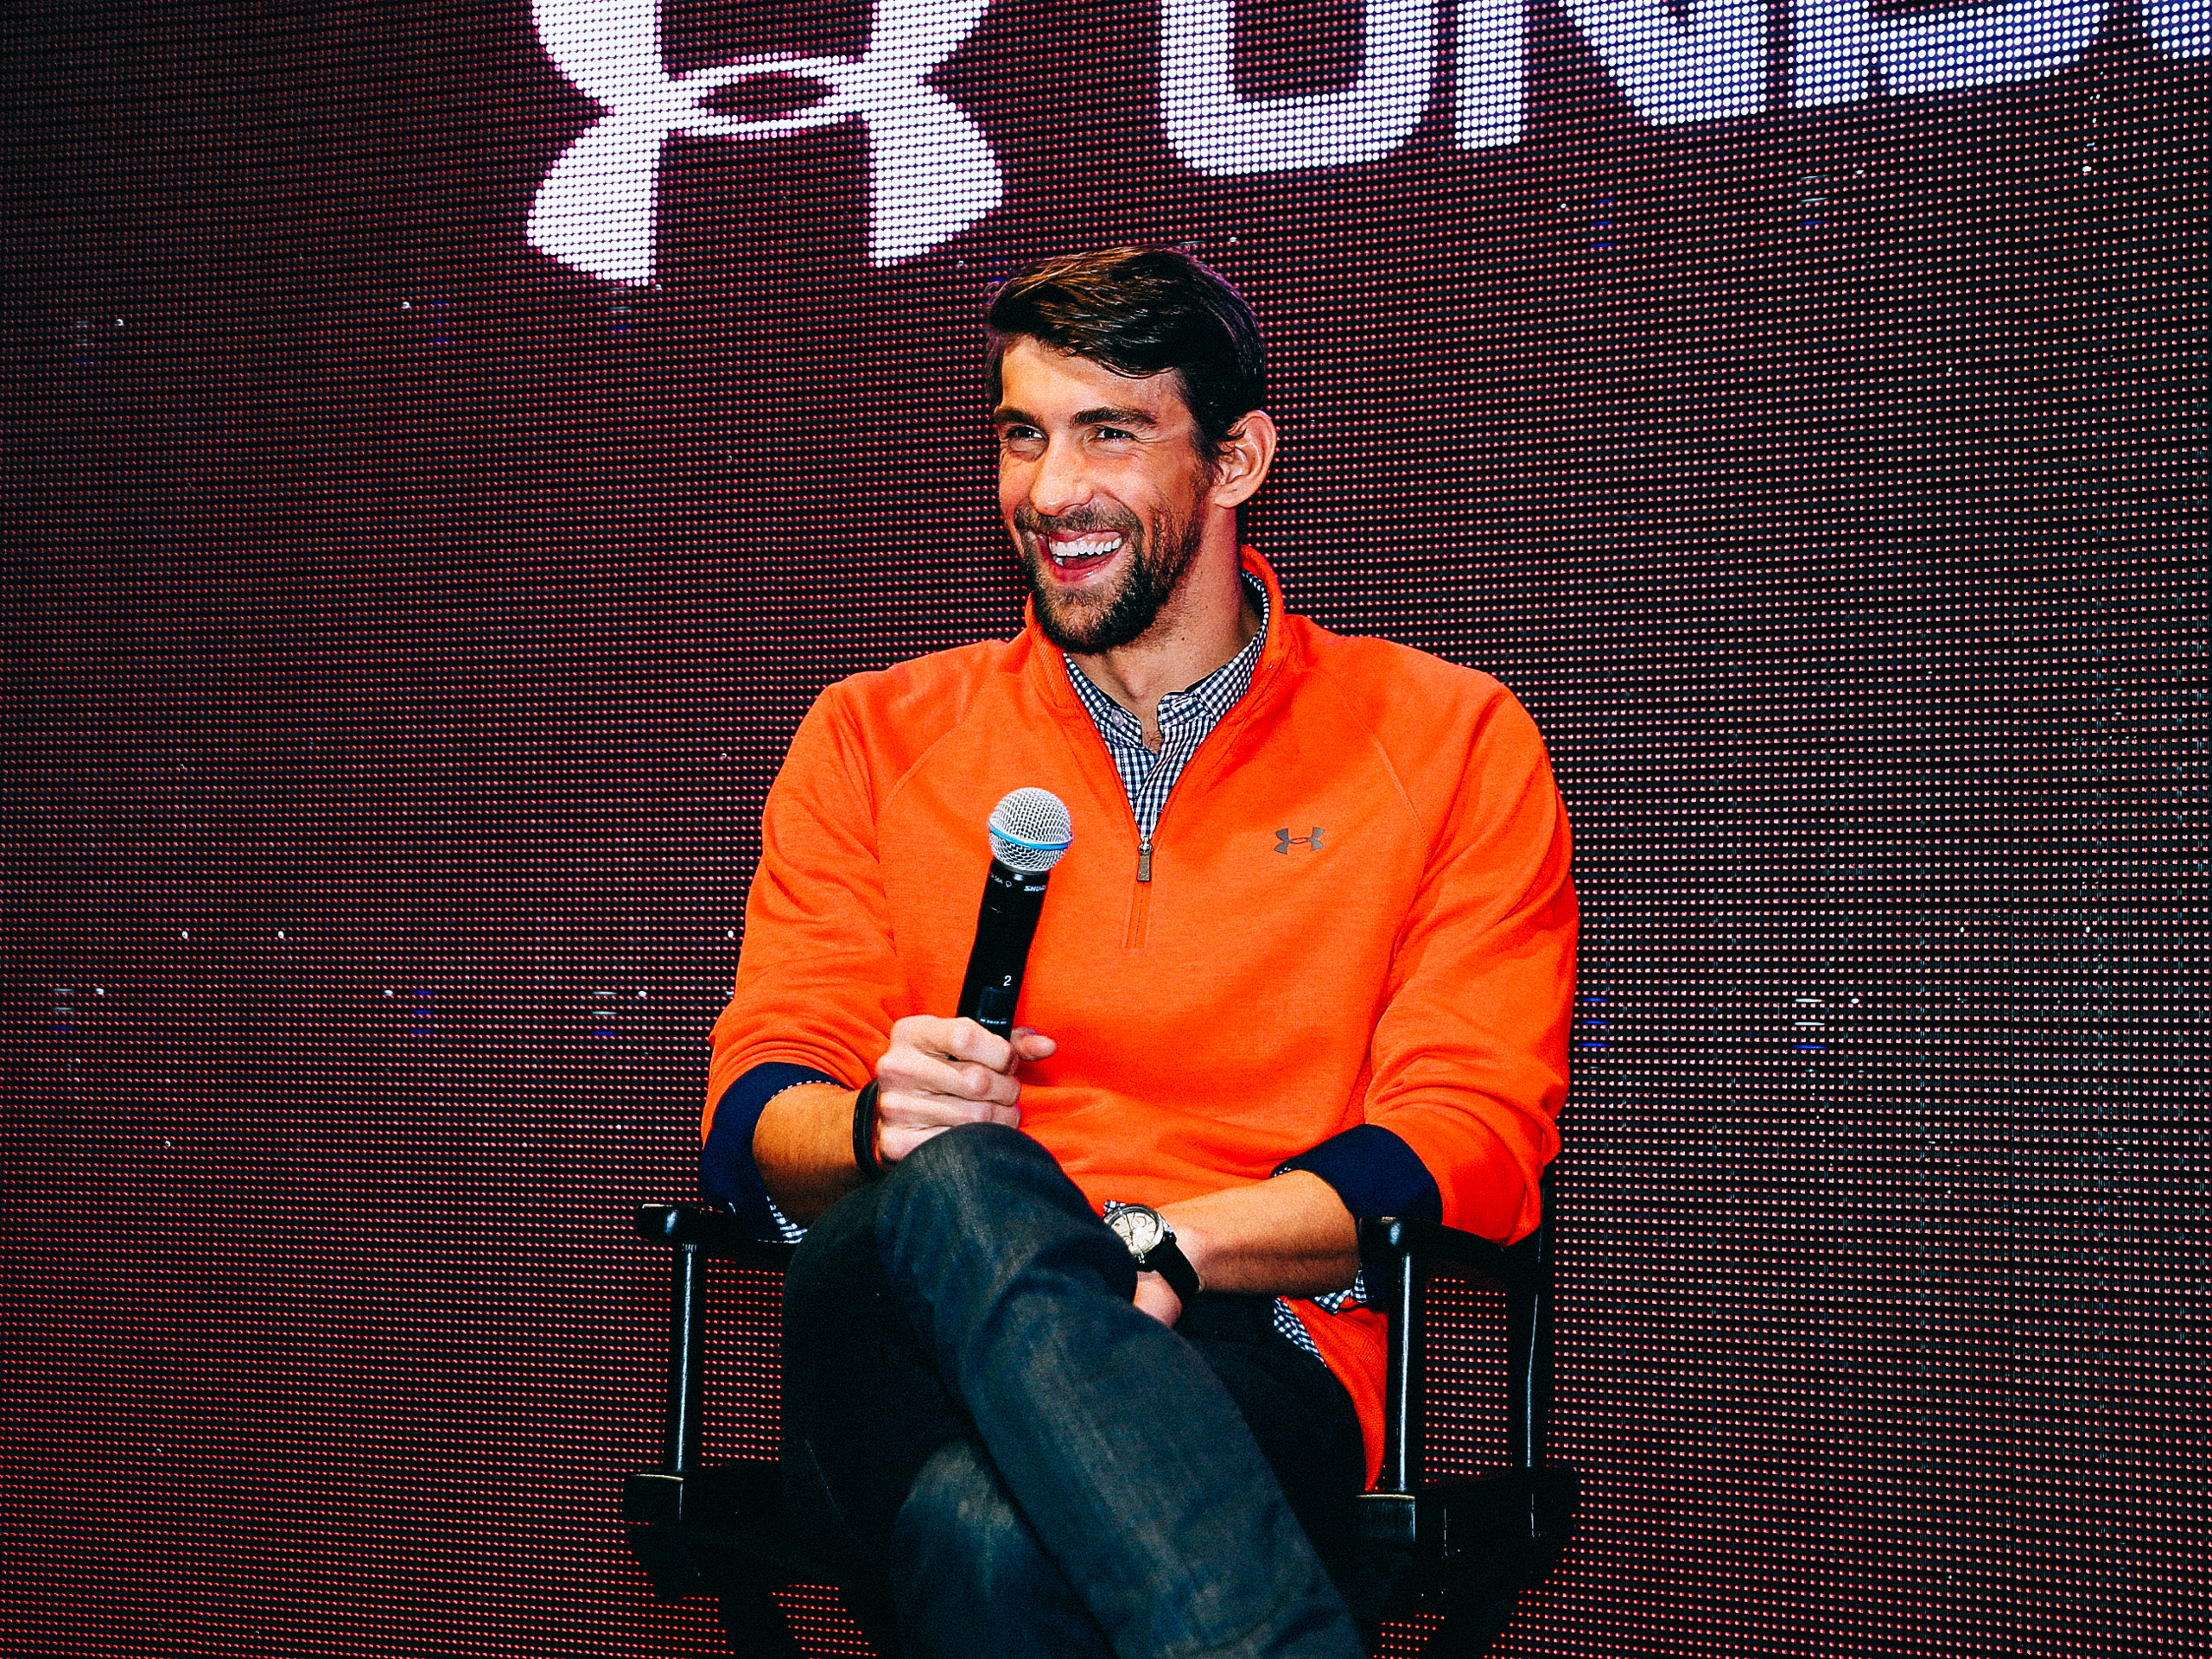 <p>Swimmer Michael Phelps, the most decorated Olympian of all time, dives in to help Under Armor make a splash.</p>